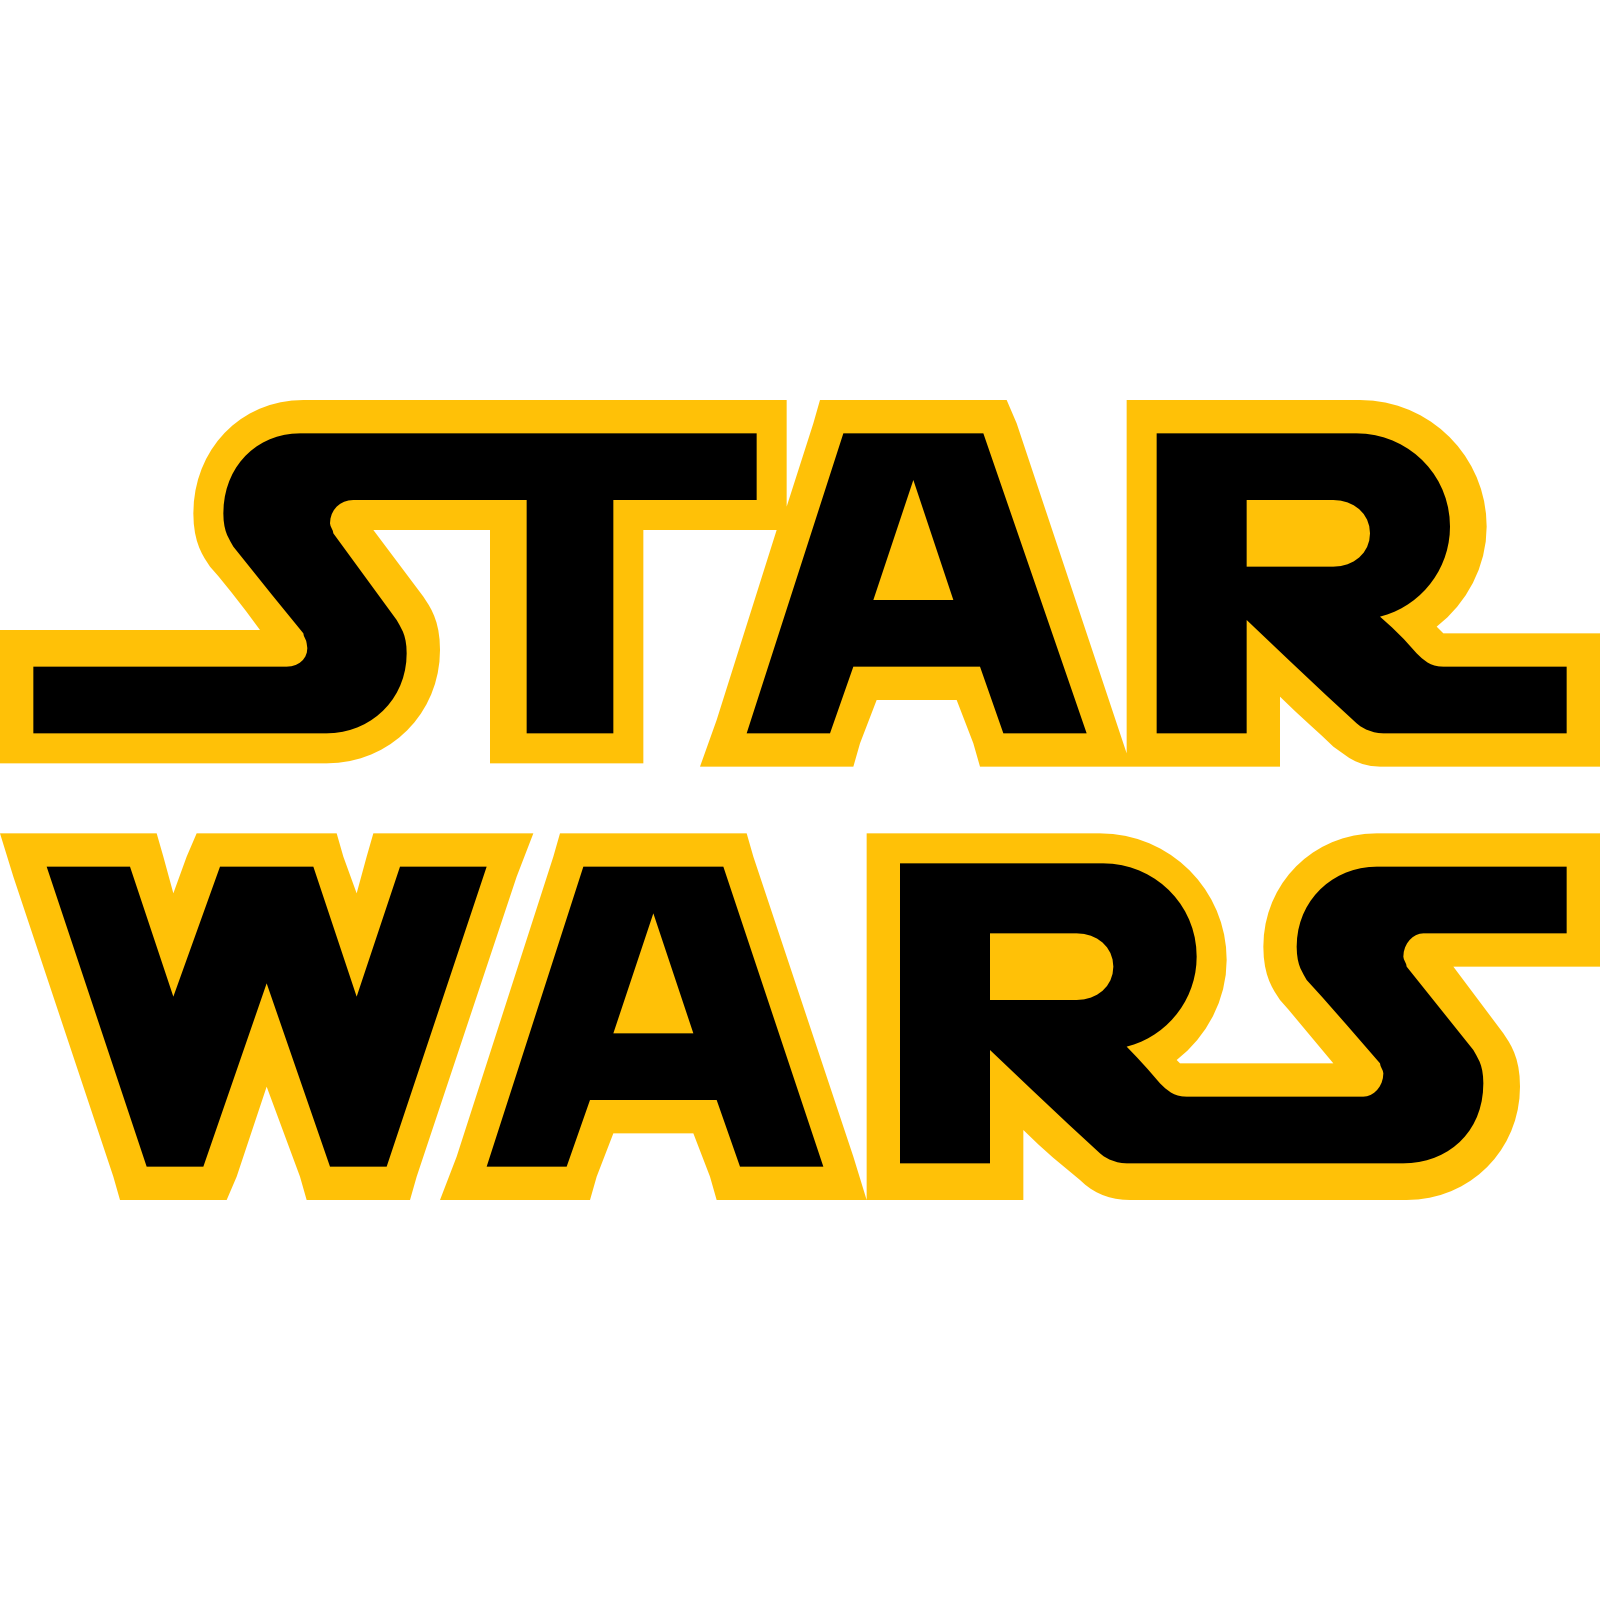 Png star wars transparent. Starwars clipart logo